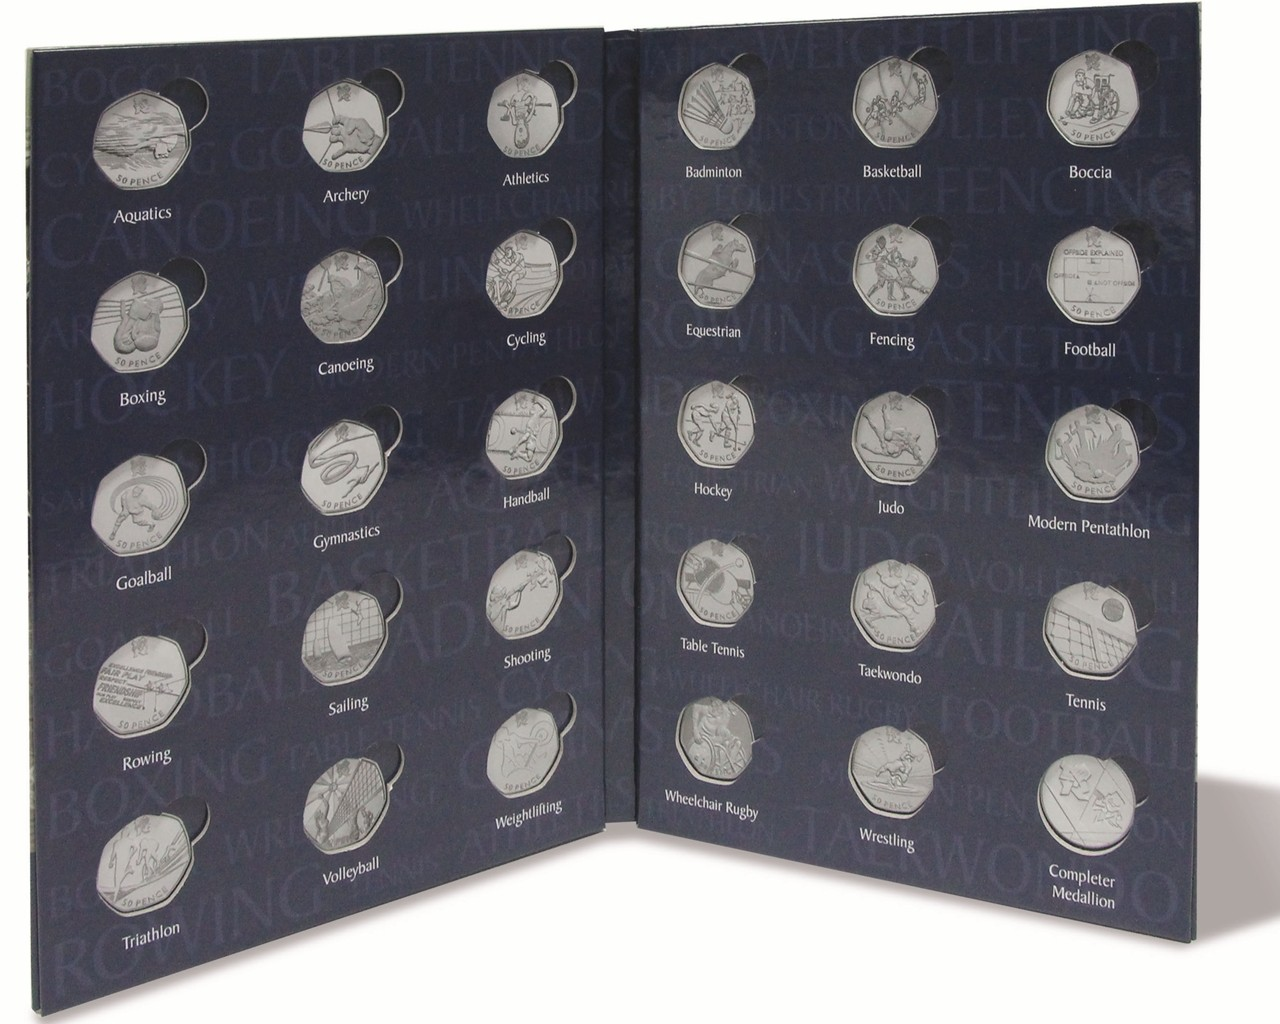 Olympic-50p-Sports-COIN-ALBUM-Folder-space4-Royal-Mint-Completer-Medallion-Medal